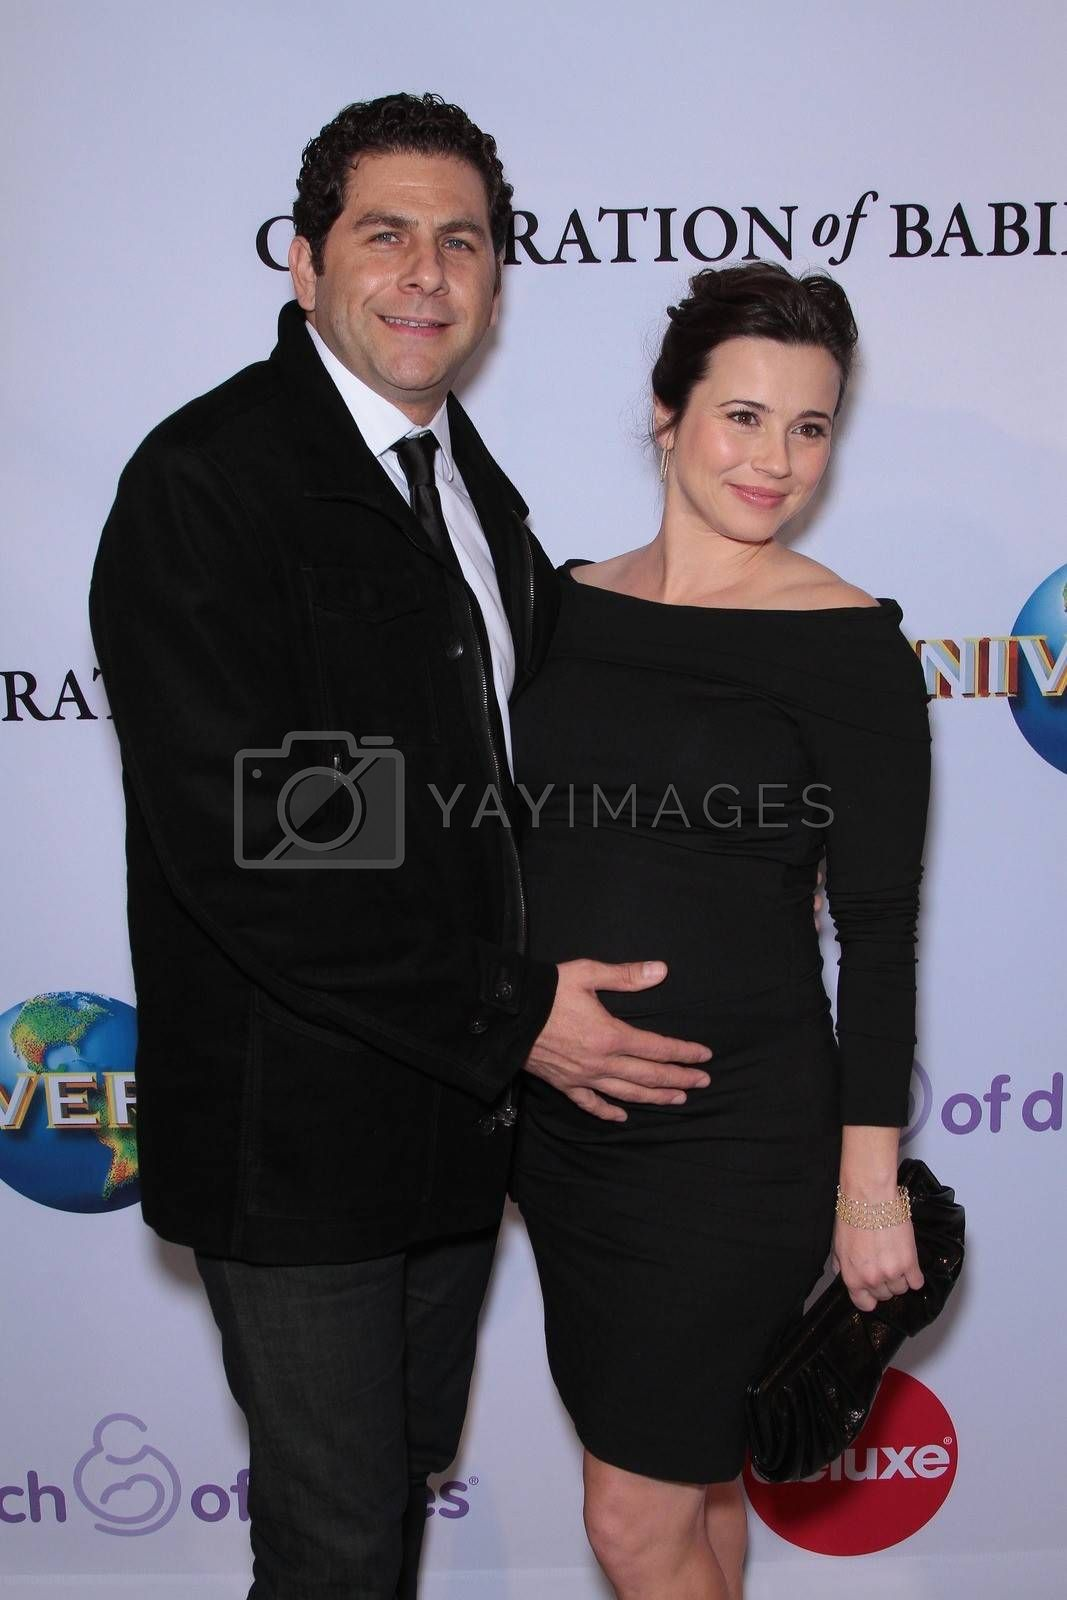 Steven Rodriguez and Linda Cardellini at the March Of Dimes' 6th Annual Celebration Of Babies Luncheon, Beverly Hills Hotel, Beverly Hills, CA 12-02-11/ImageCollect by ImageCollect